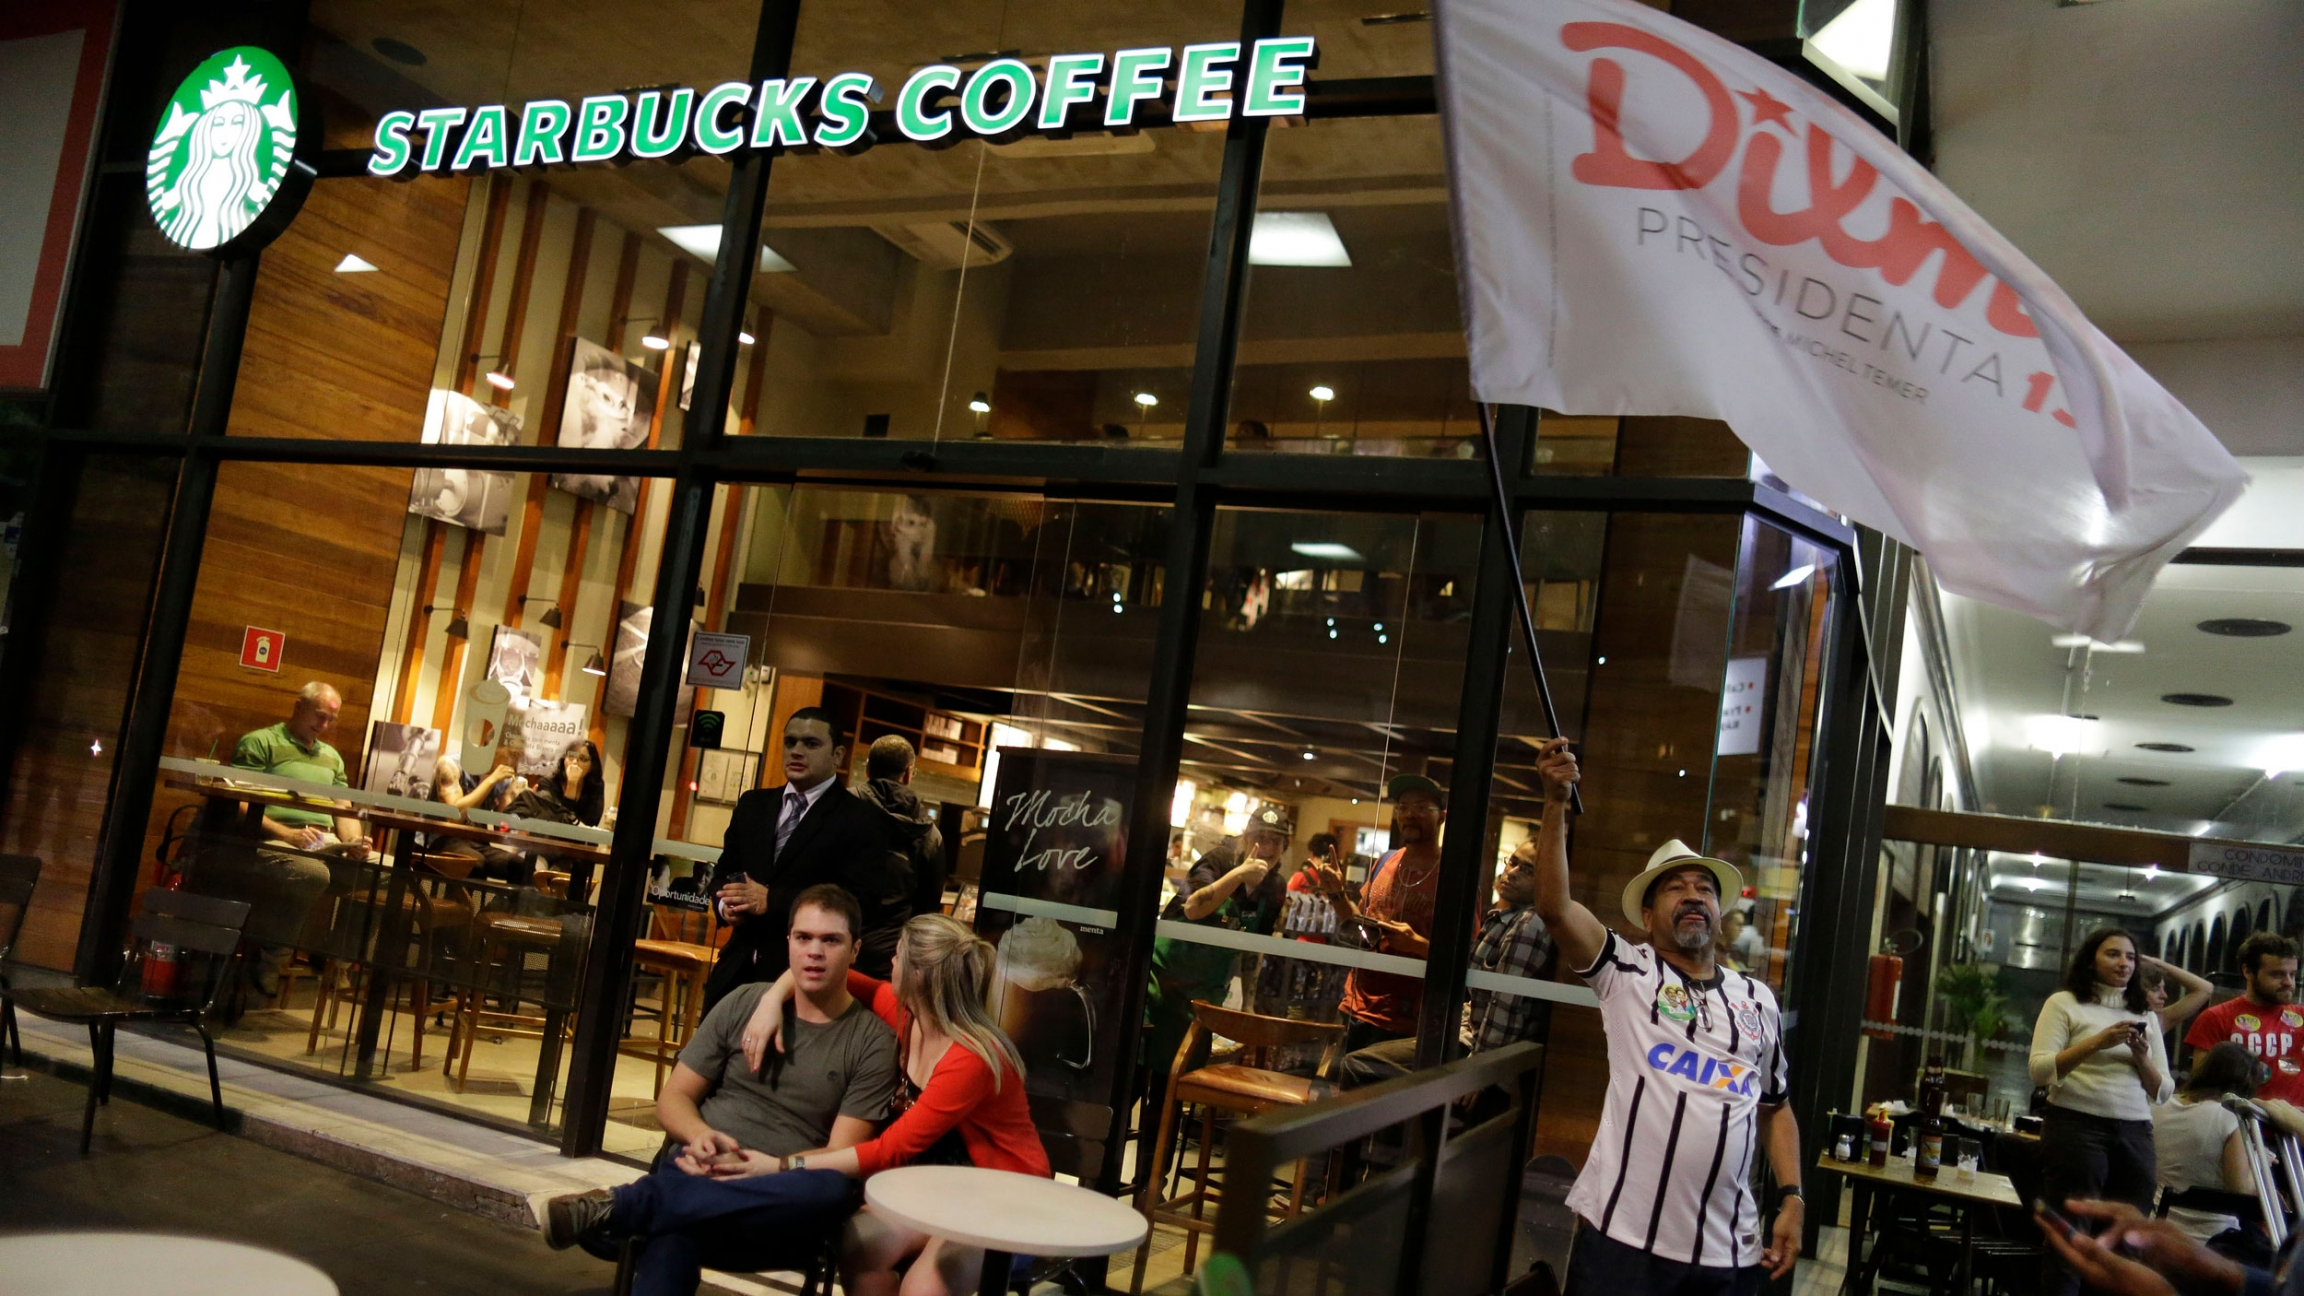 Brazilians gather in front of a Starbucks coffee shop in Sao Paulo, Brazil, Sunday, Oct. 26, 2014. Recent extreme weather events have taken a toll on Brazil's coffee crops, straining the global coffee supply chain.